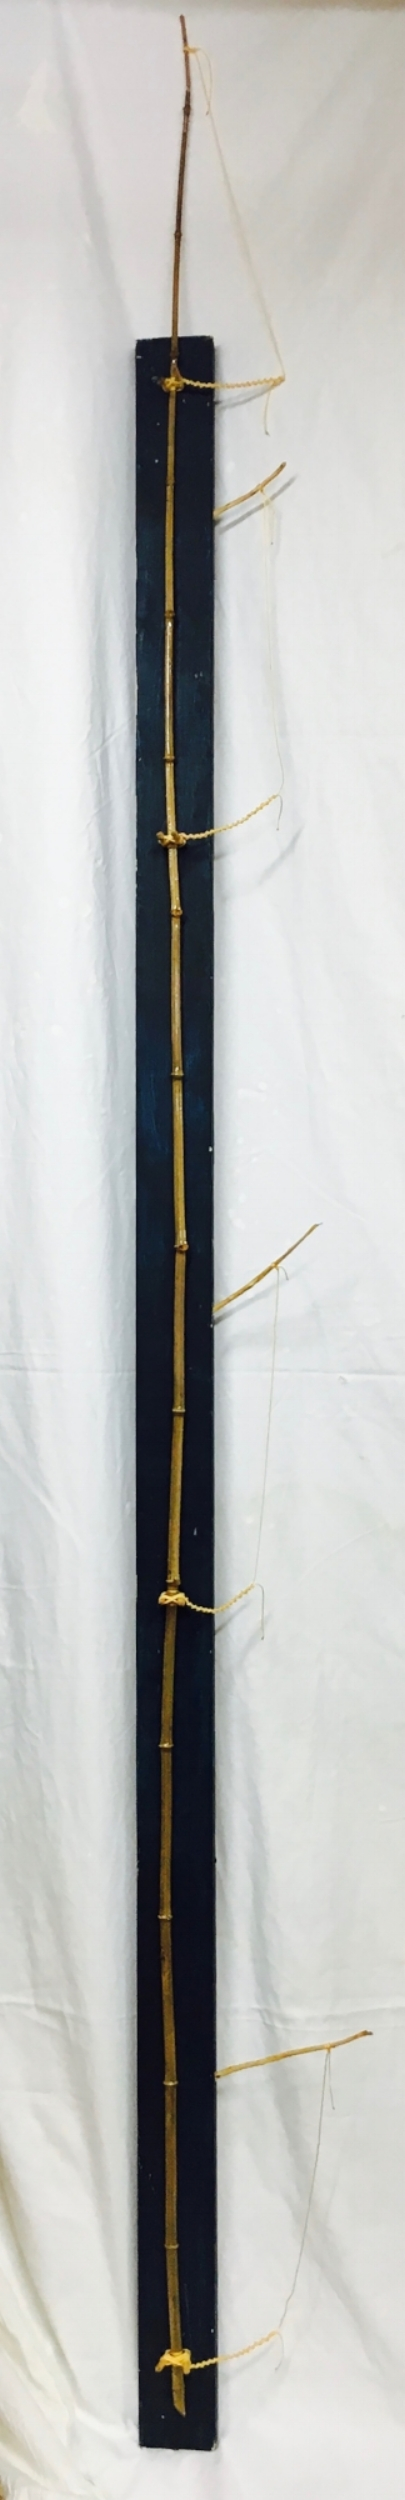 "#Day24520 - Emory Museum Stele 2017 · found wood, cedar pegs, rope, varnish · 107.5""x11""x6.5"""